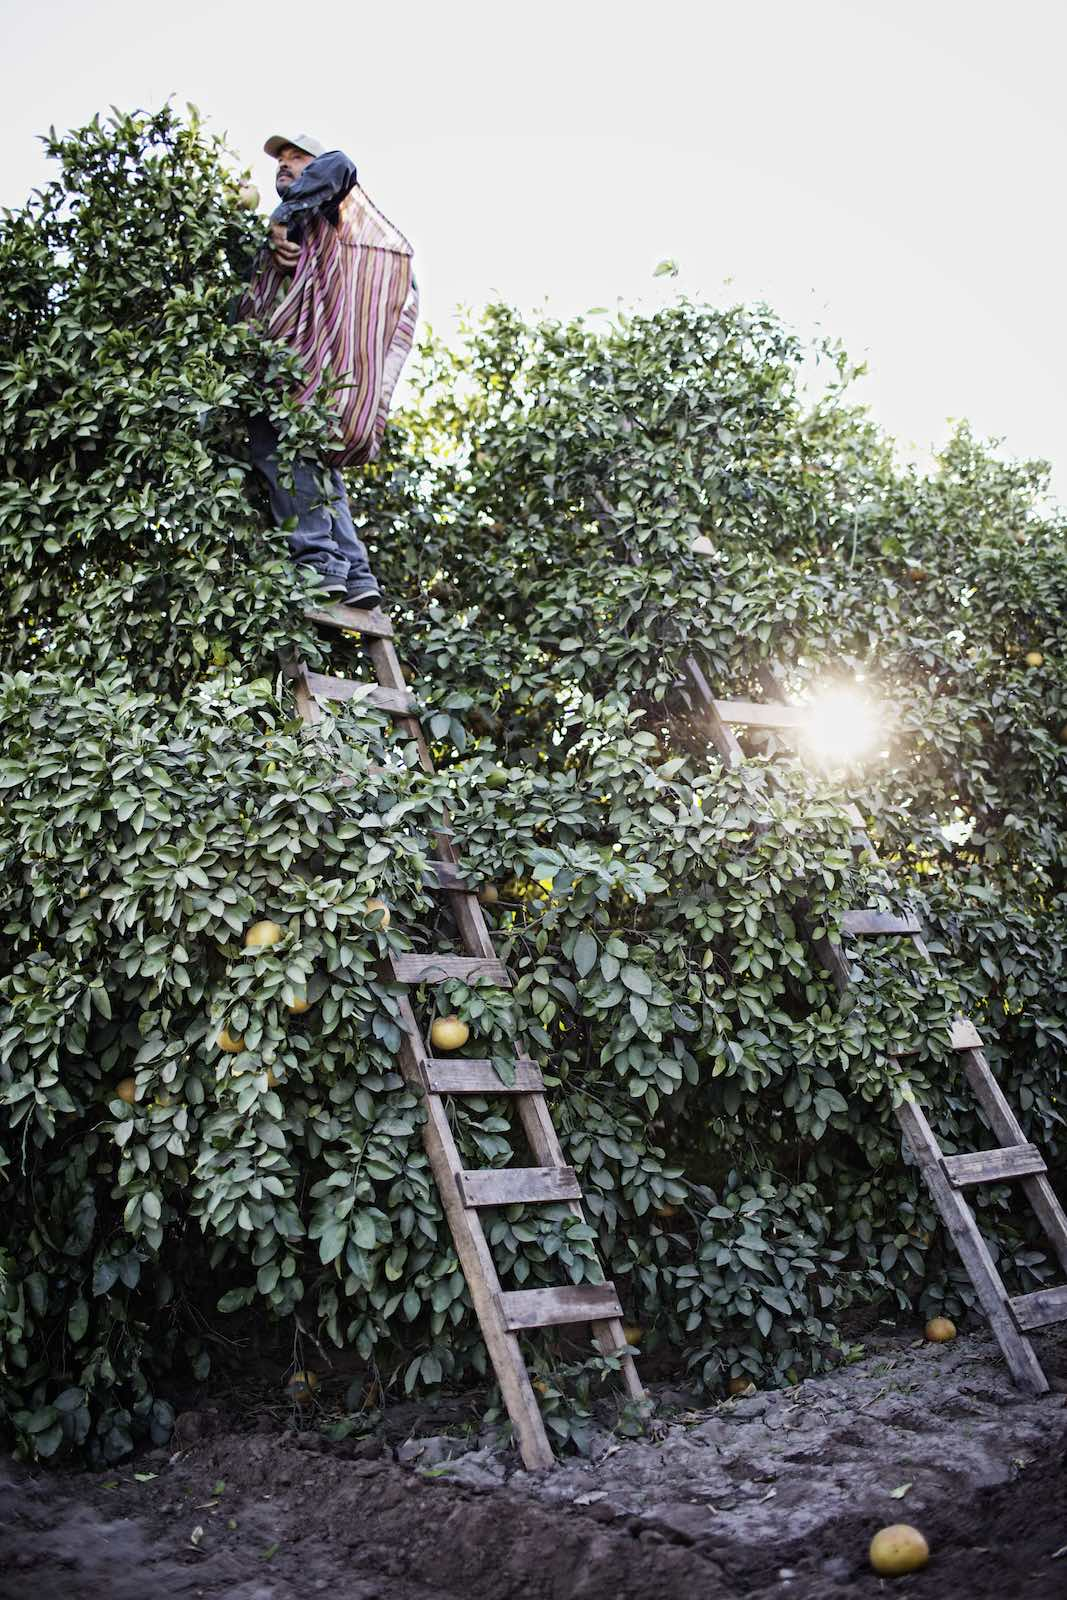 Jody Horton Photography - Single grapefruit farmer picking fruits from a wood ladder.